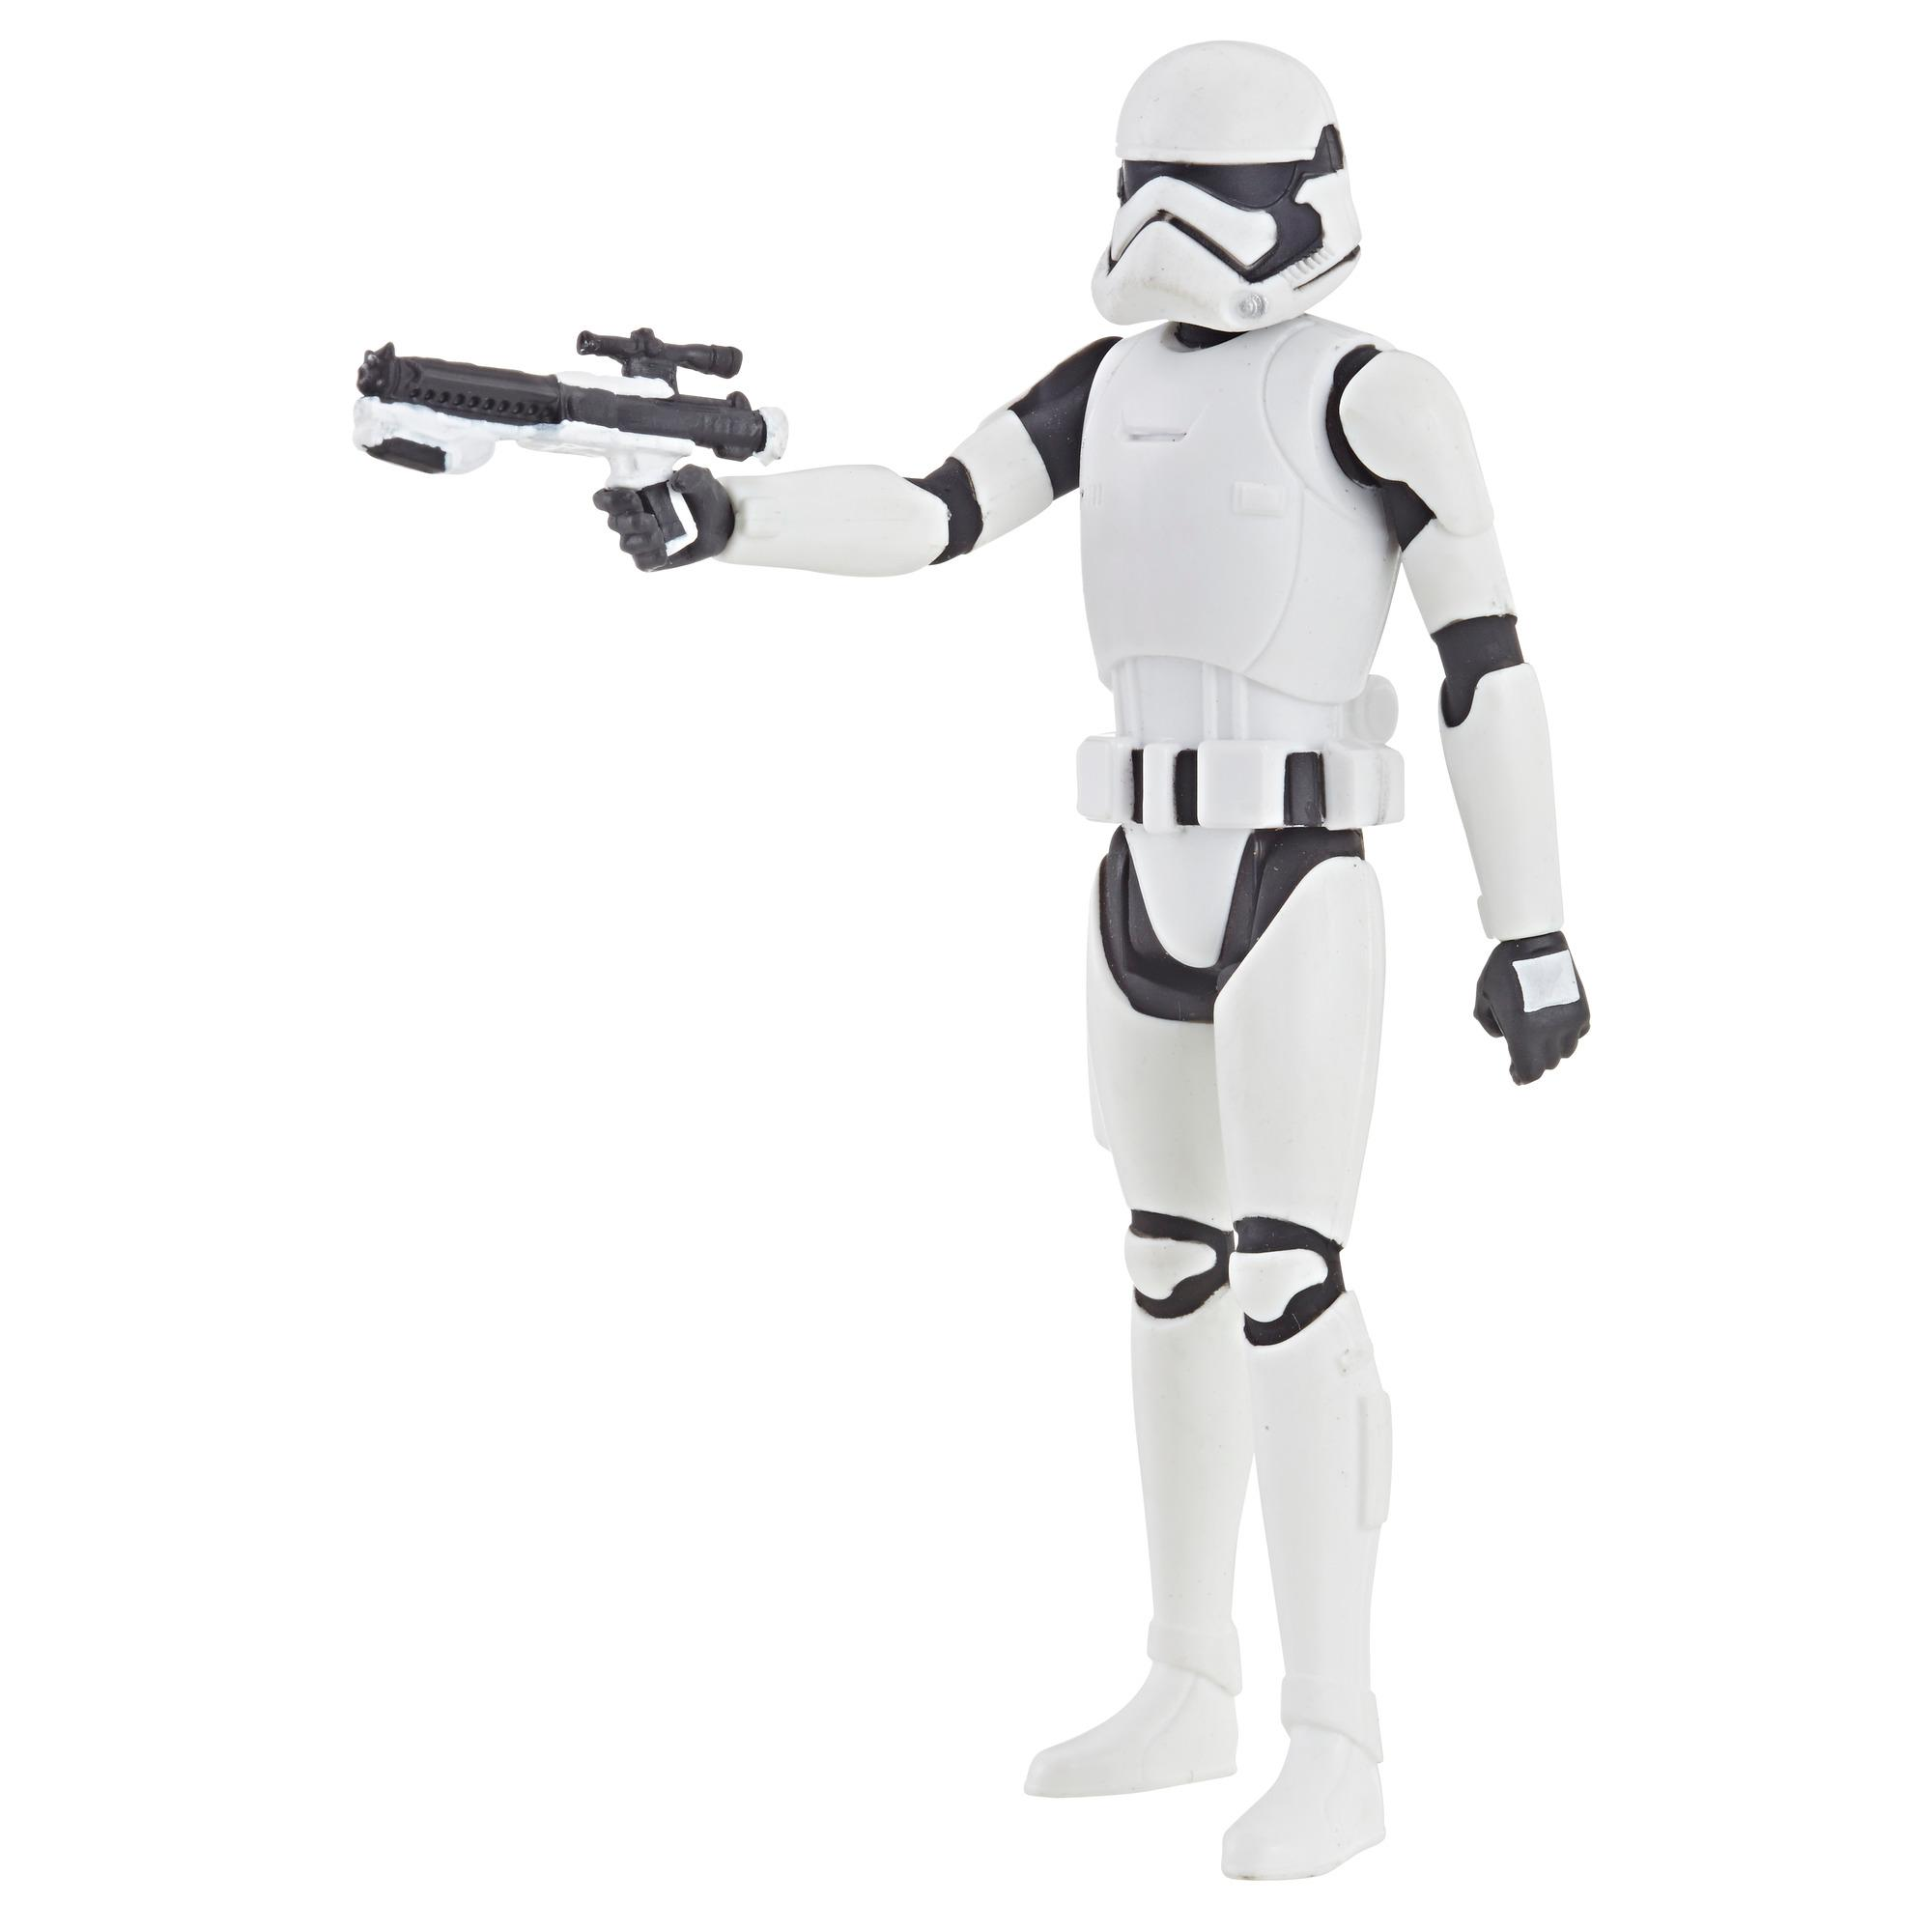 Star Wars Stormtrooper Figur